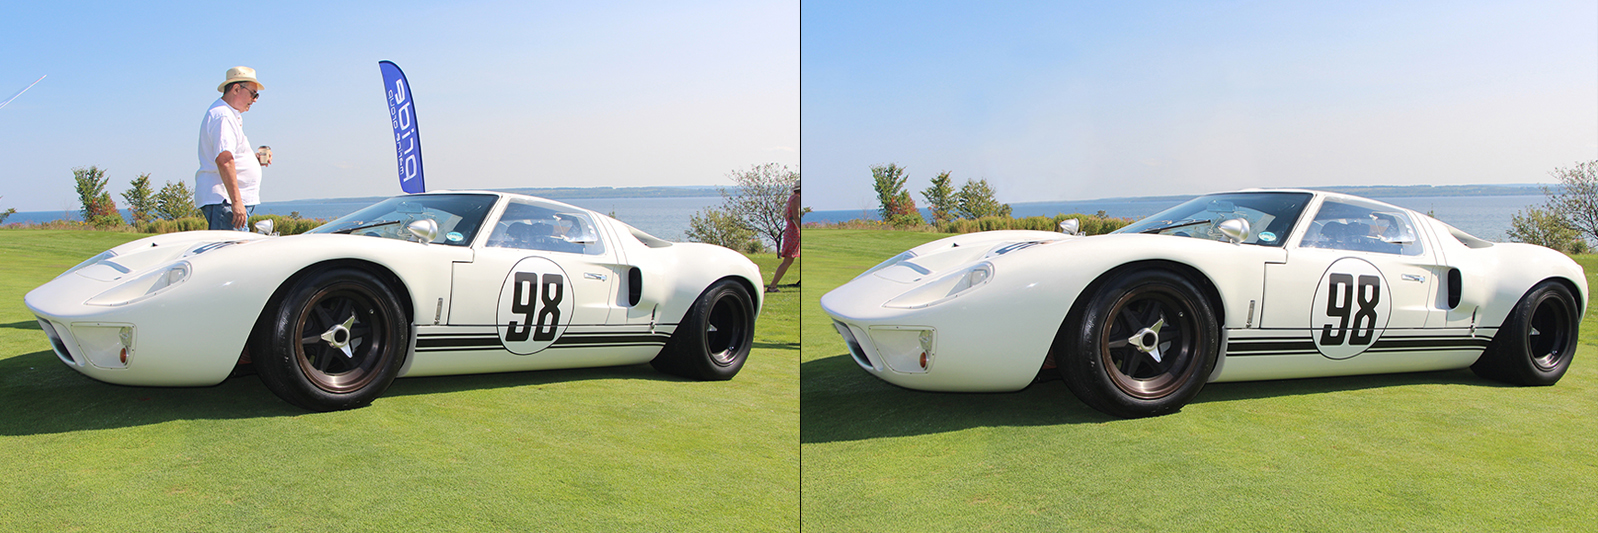 Before and after. Ford GT40.